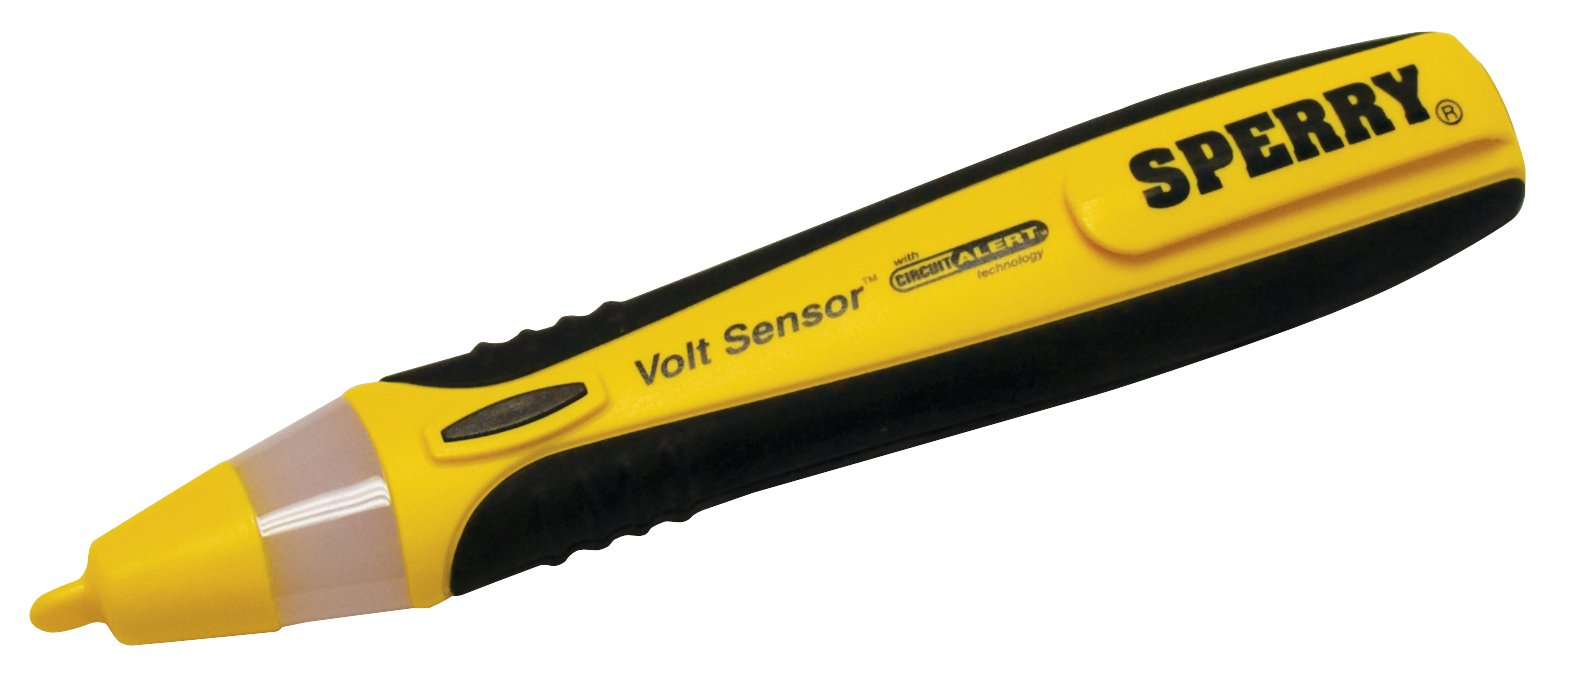 Sperry Instruments VD6504 Non-Contact Voltage Detector, Comfort Grip, 50-1000V AC, 360° LED Light Display, Home/Auto/Professional Electrical Voltage Tester, Yellow & Black